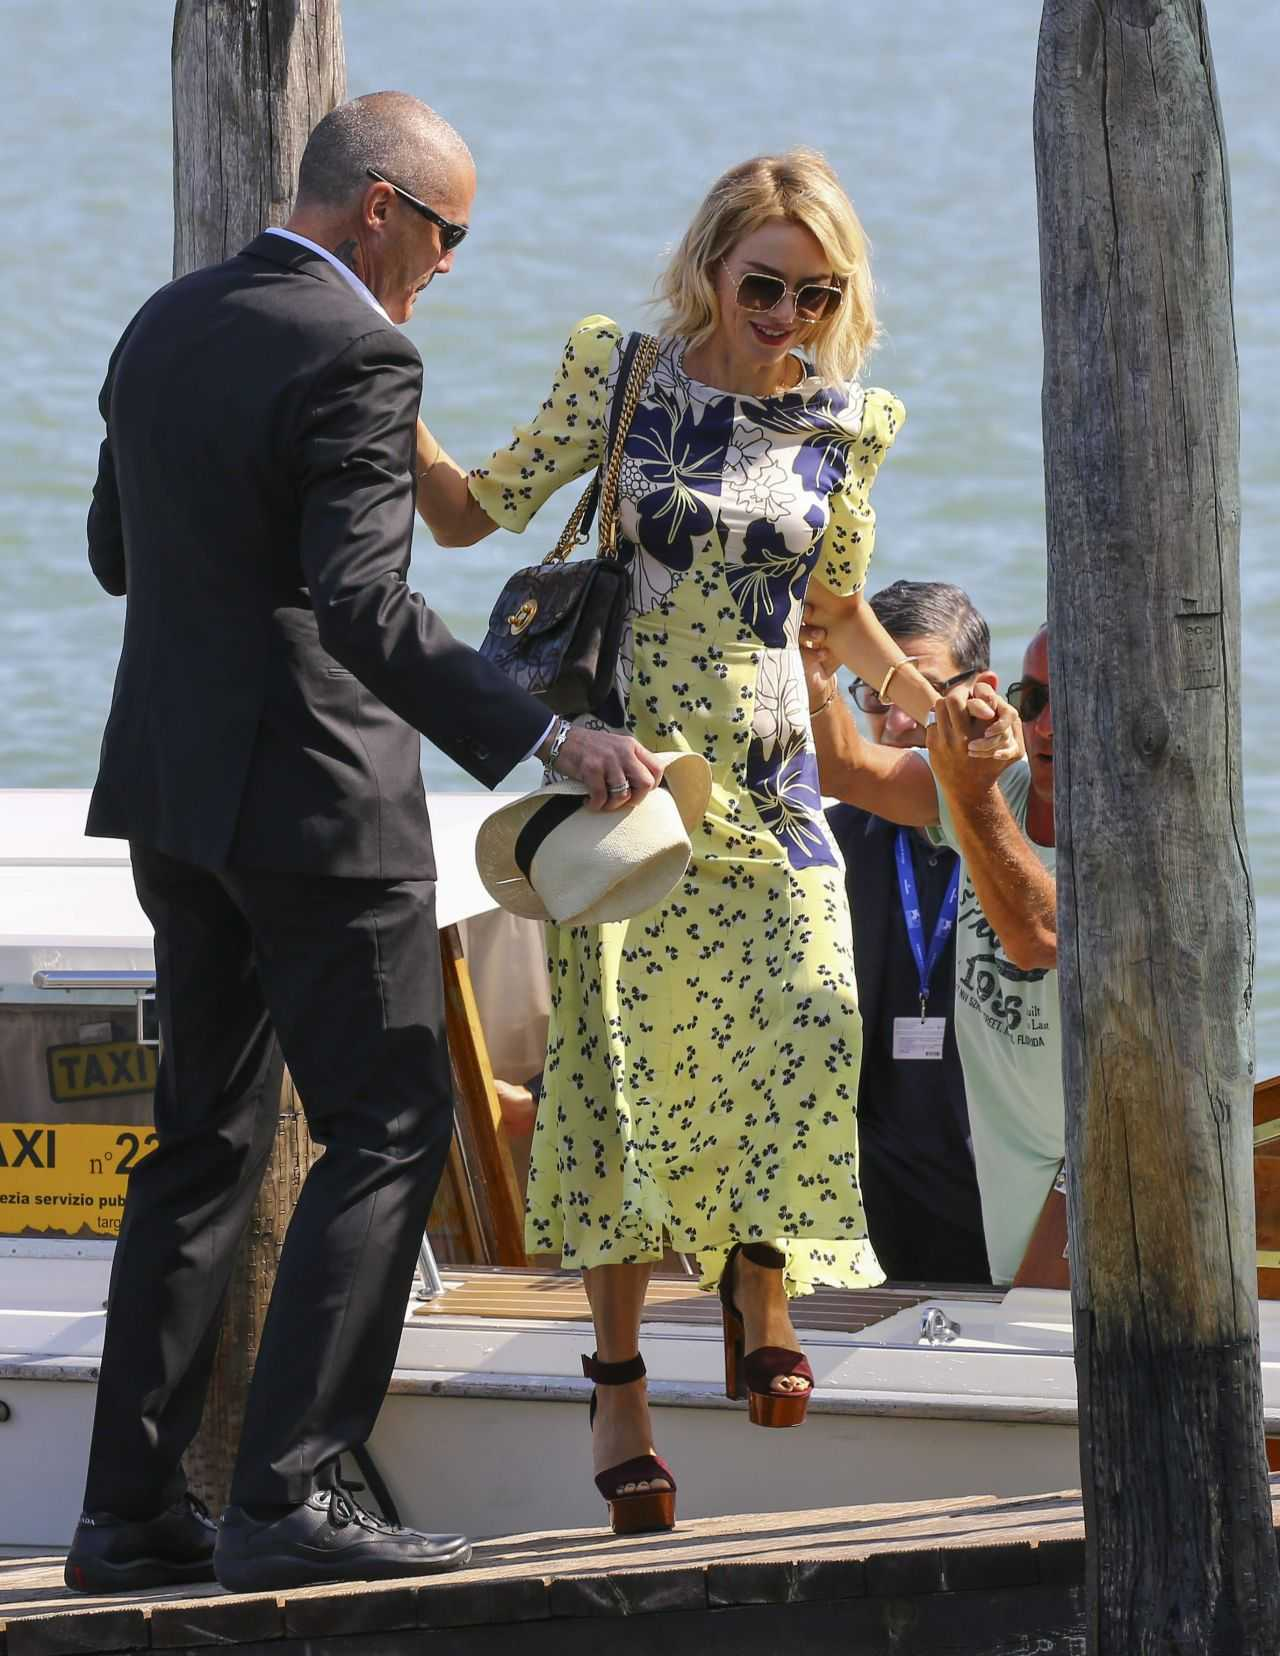 Naomi-Watts-Arriving-Private-Dock-in-Venice-Italy-4